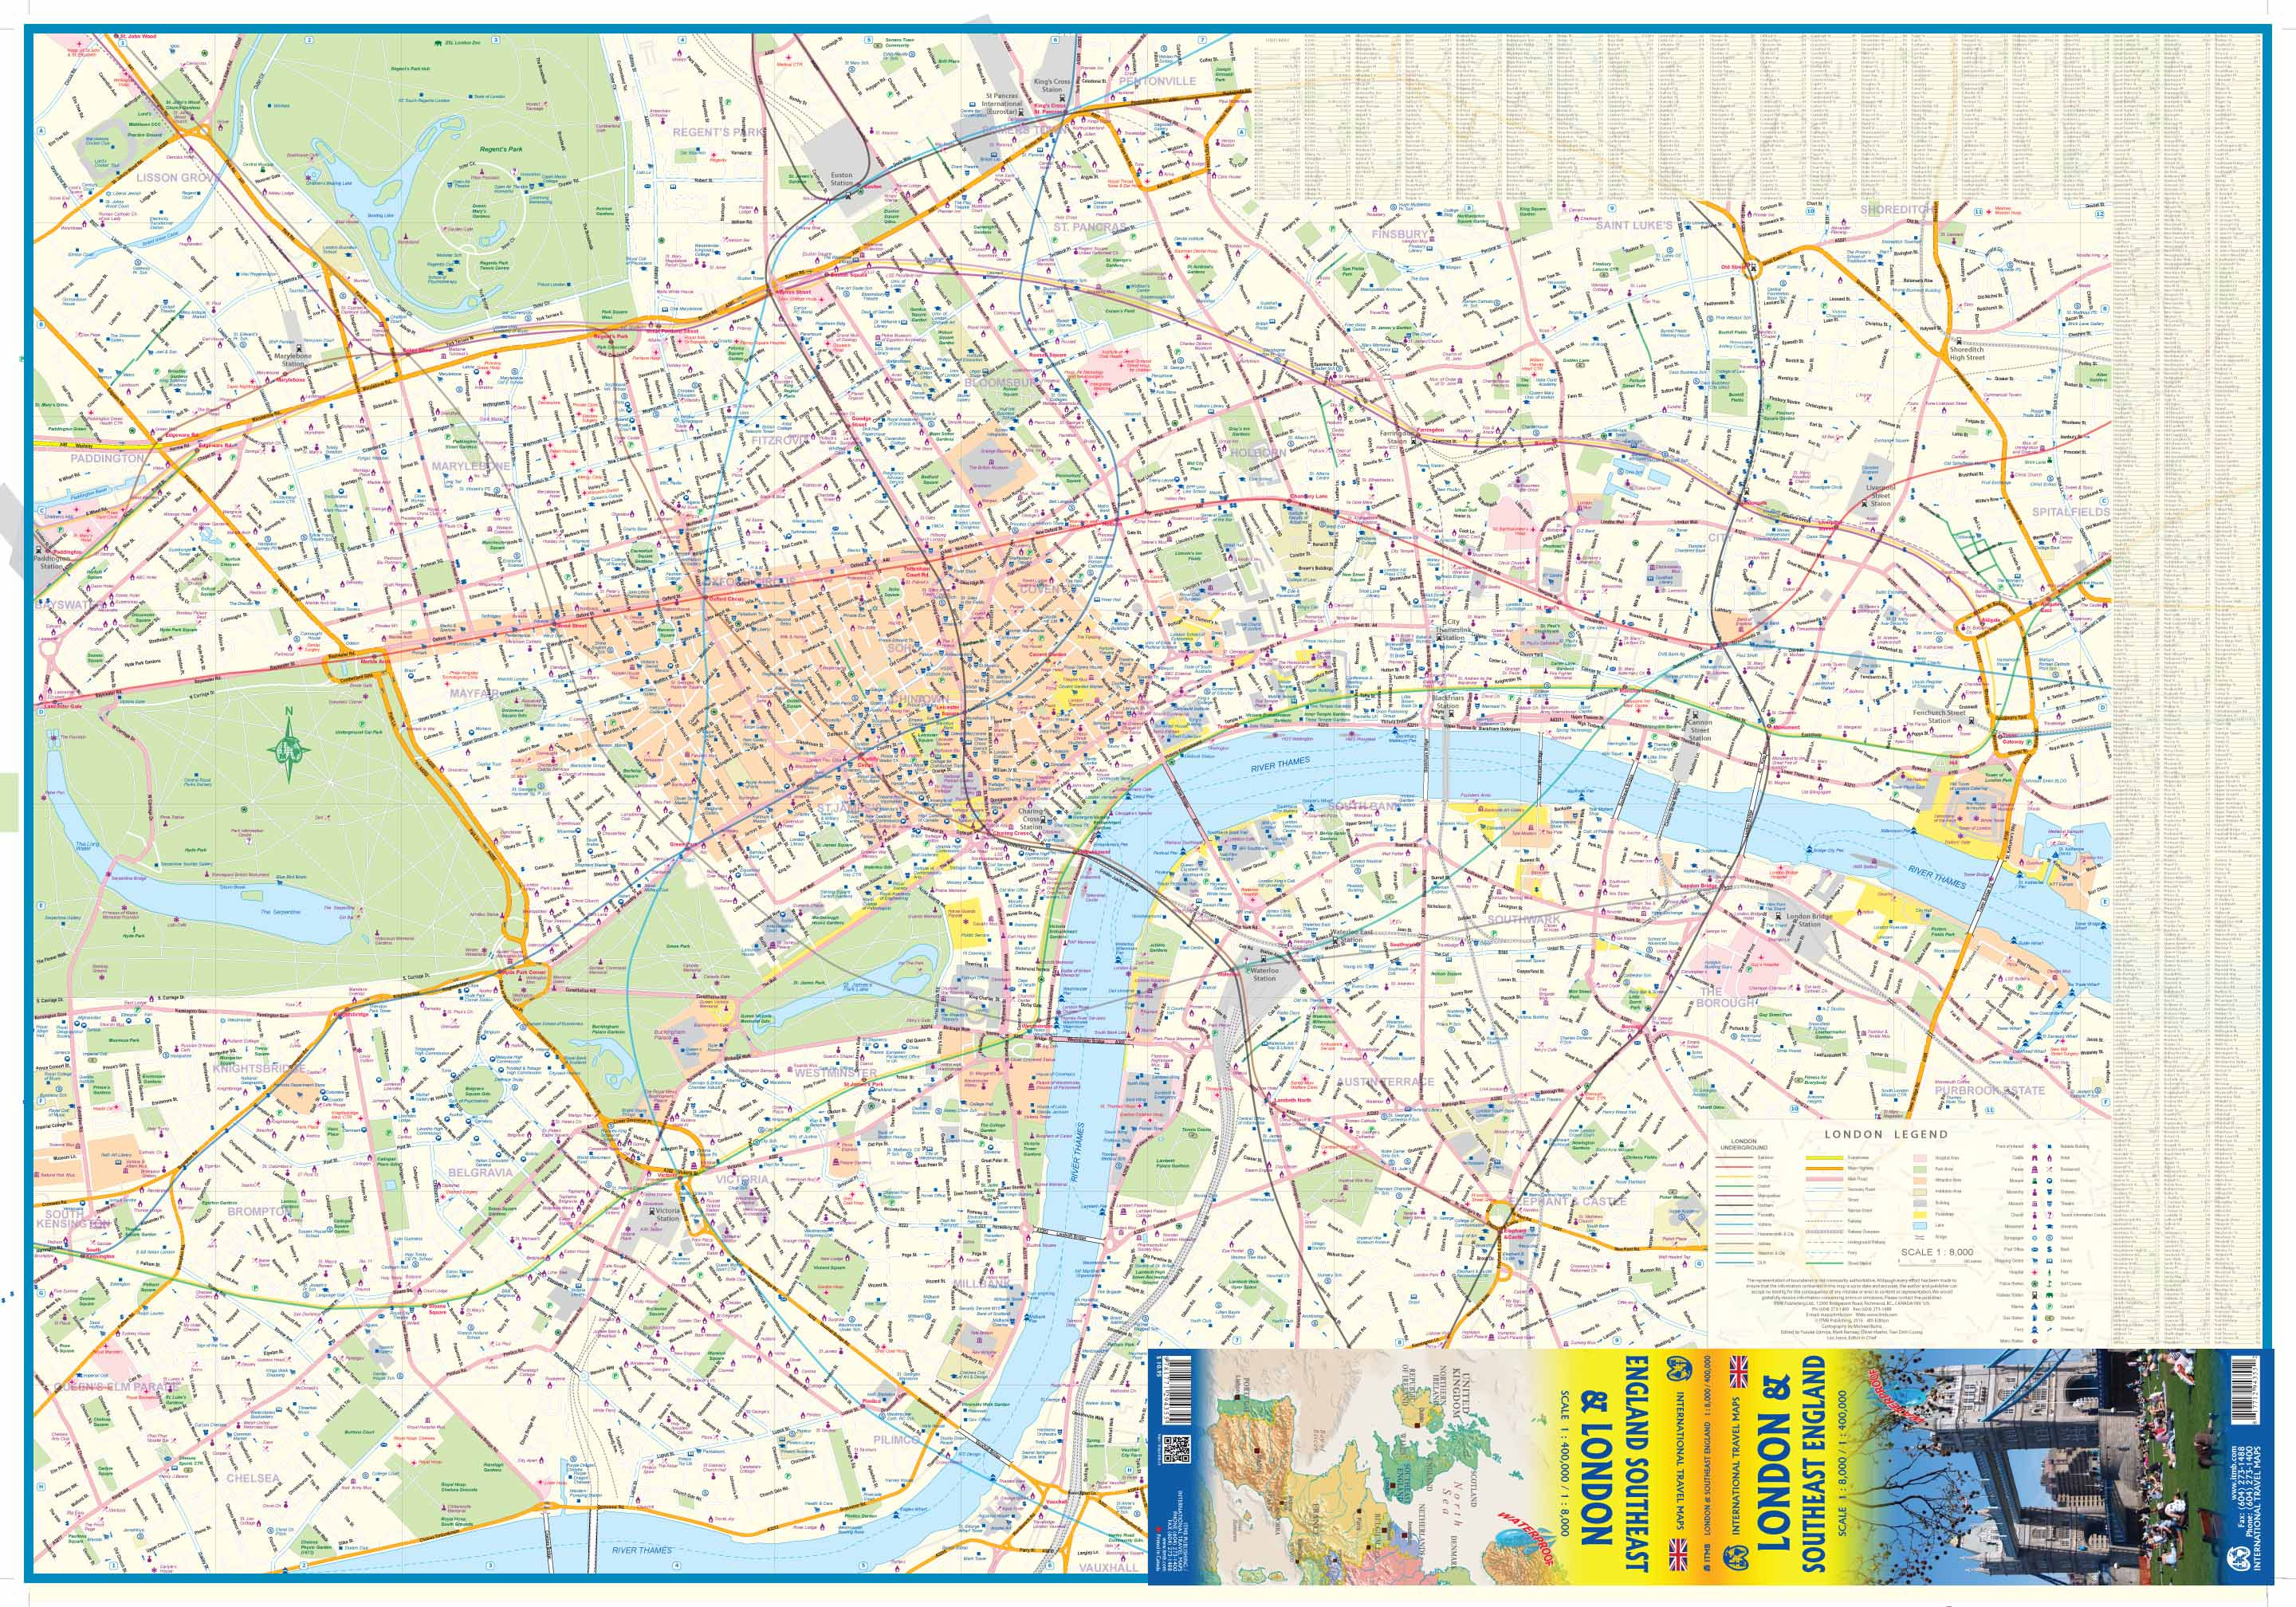 Topographic Map London.Maps For Travel City Maps Road Maps Guides Globes Topographic Maps